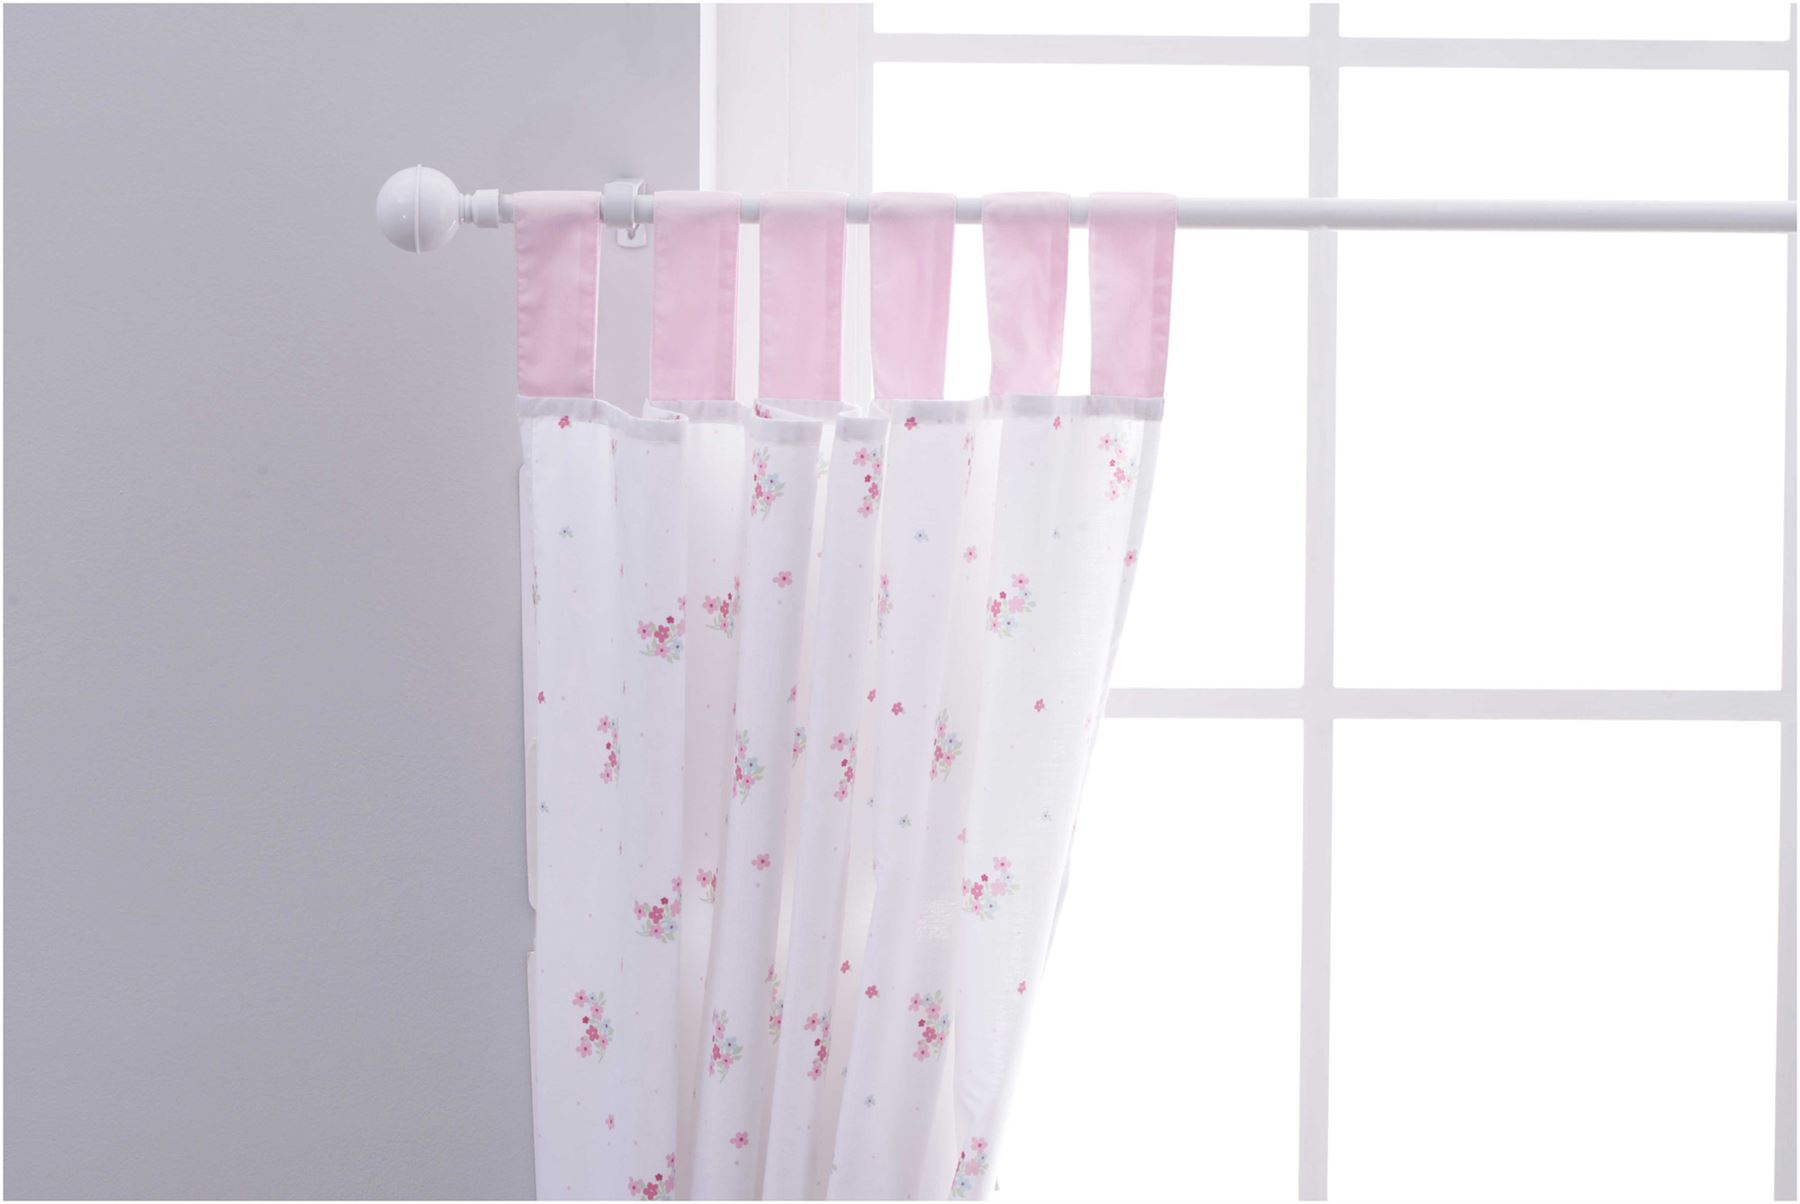 Baby Nursery Curtain Tie Backs Details About East Coast Silvercloud Sweet Dreams Nursery Curtains With Tie Backs Baby